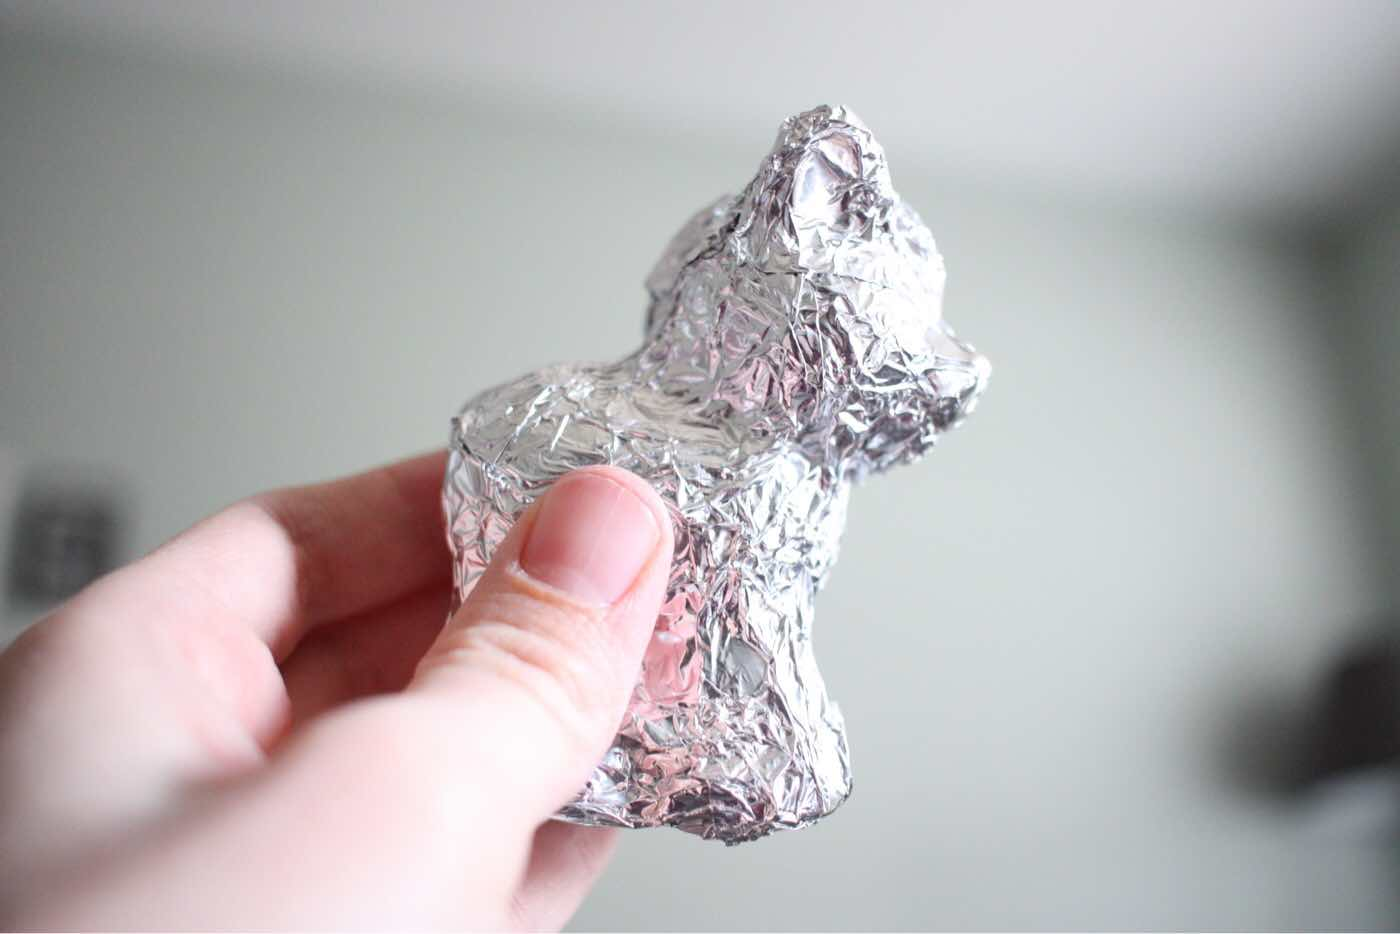 Foil wrapped toys - a simple activity to give old toys new life